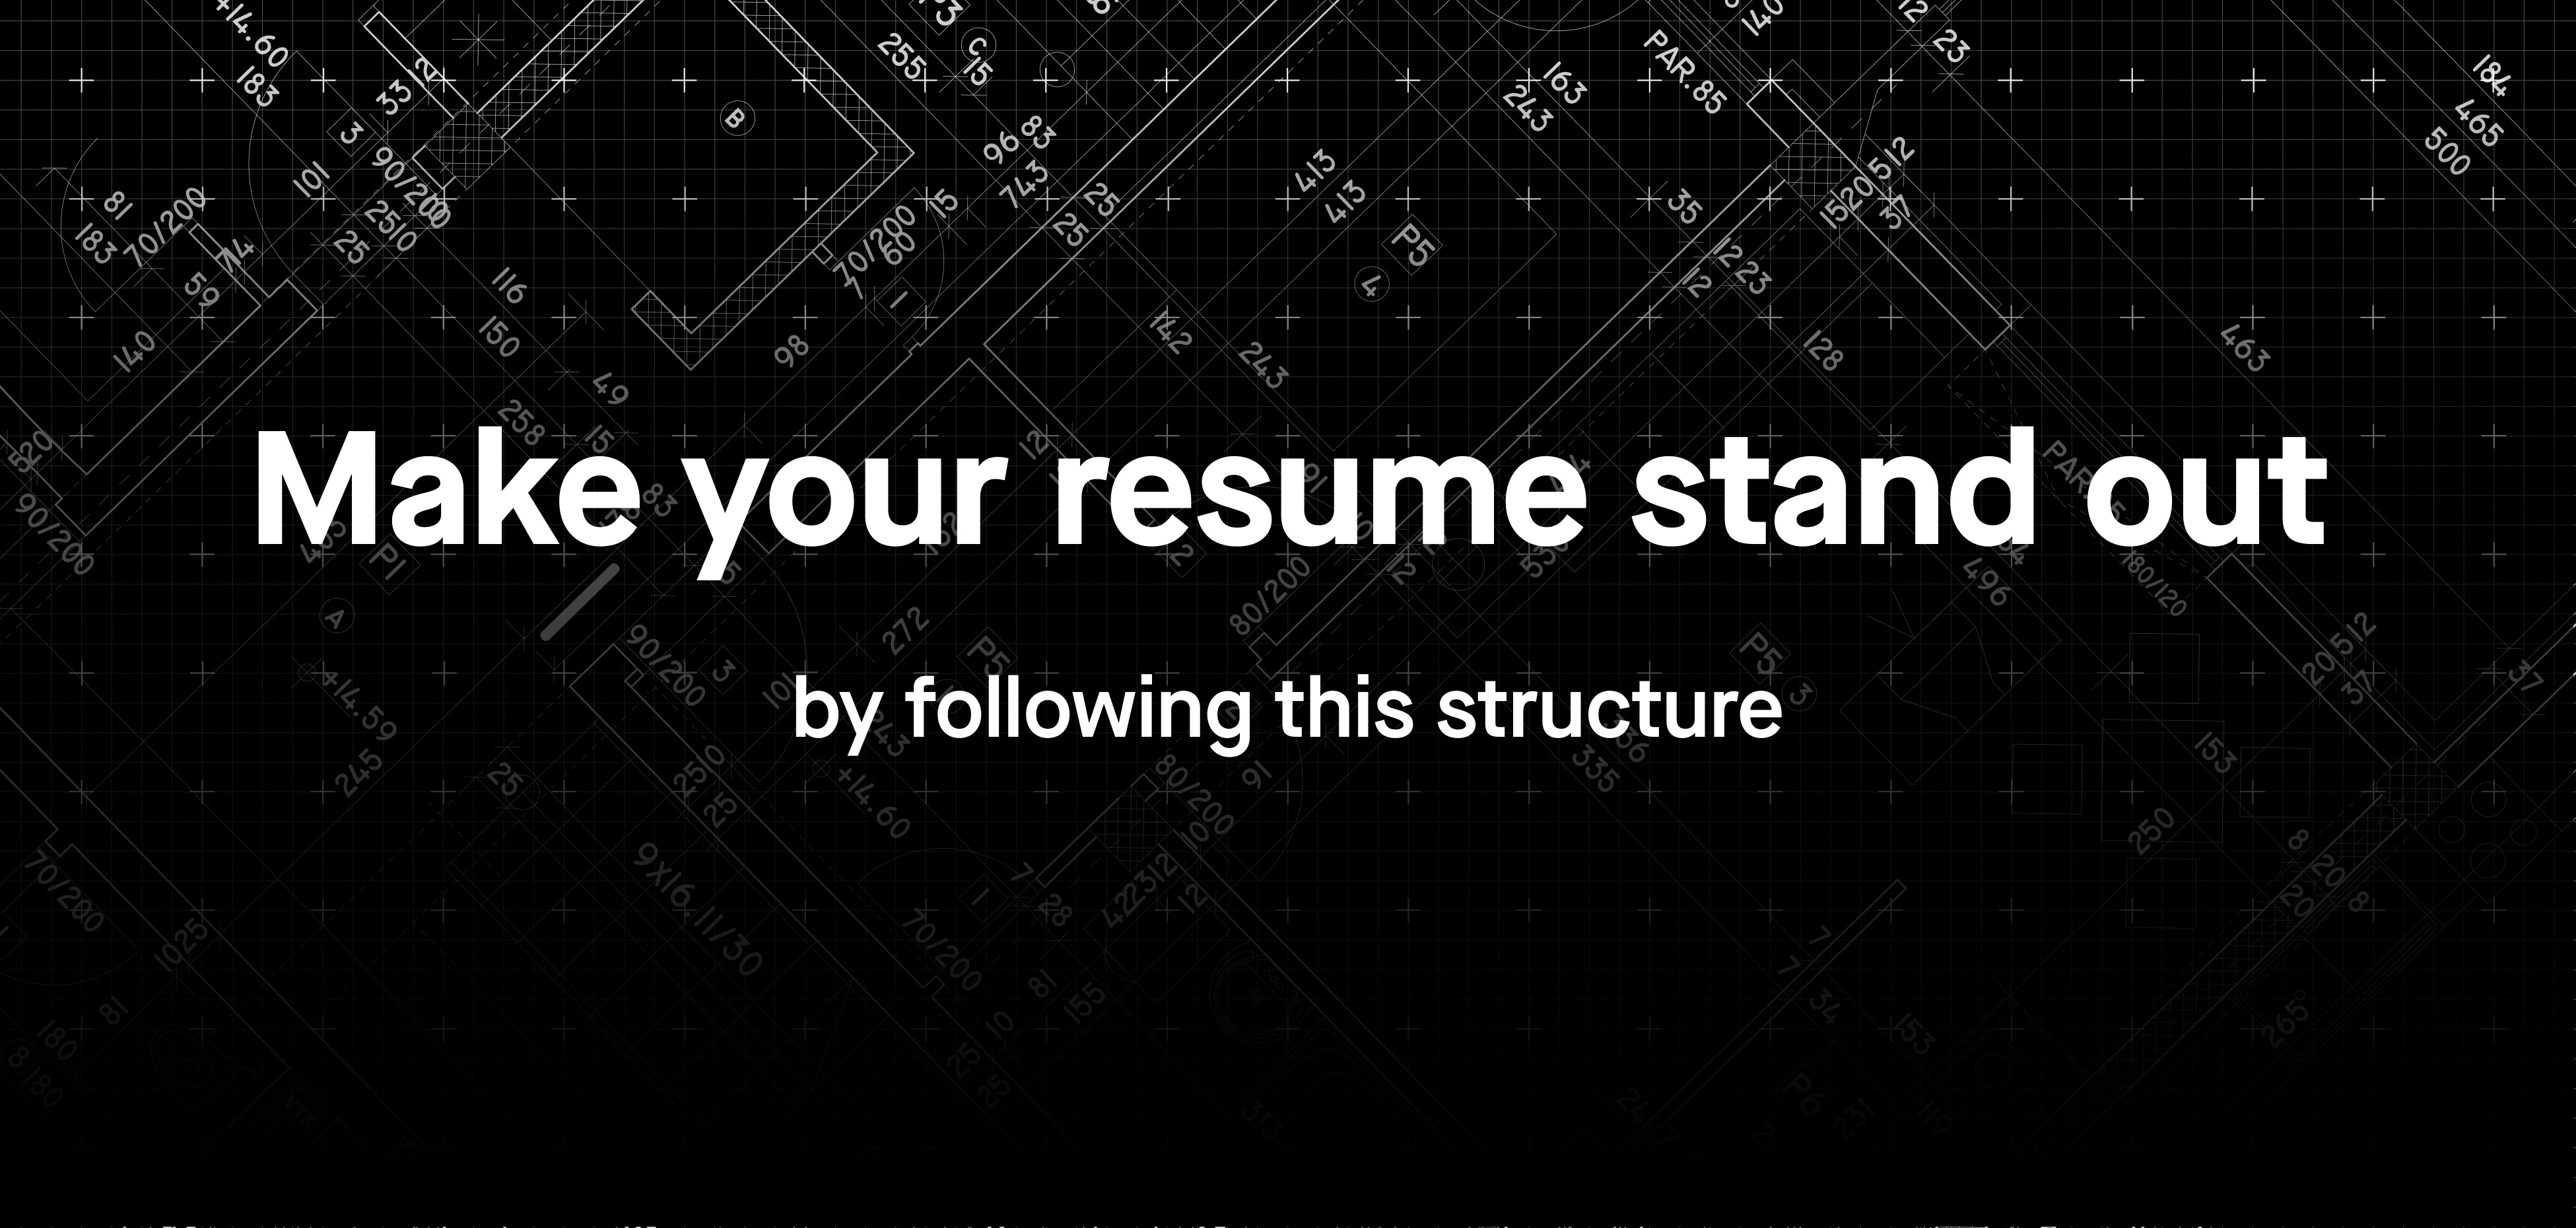 /how-to-make-your-resume-stand-out-from-the-crowd-gj4h31zl feature image